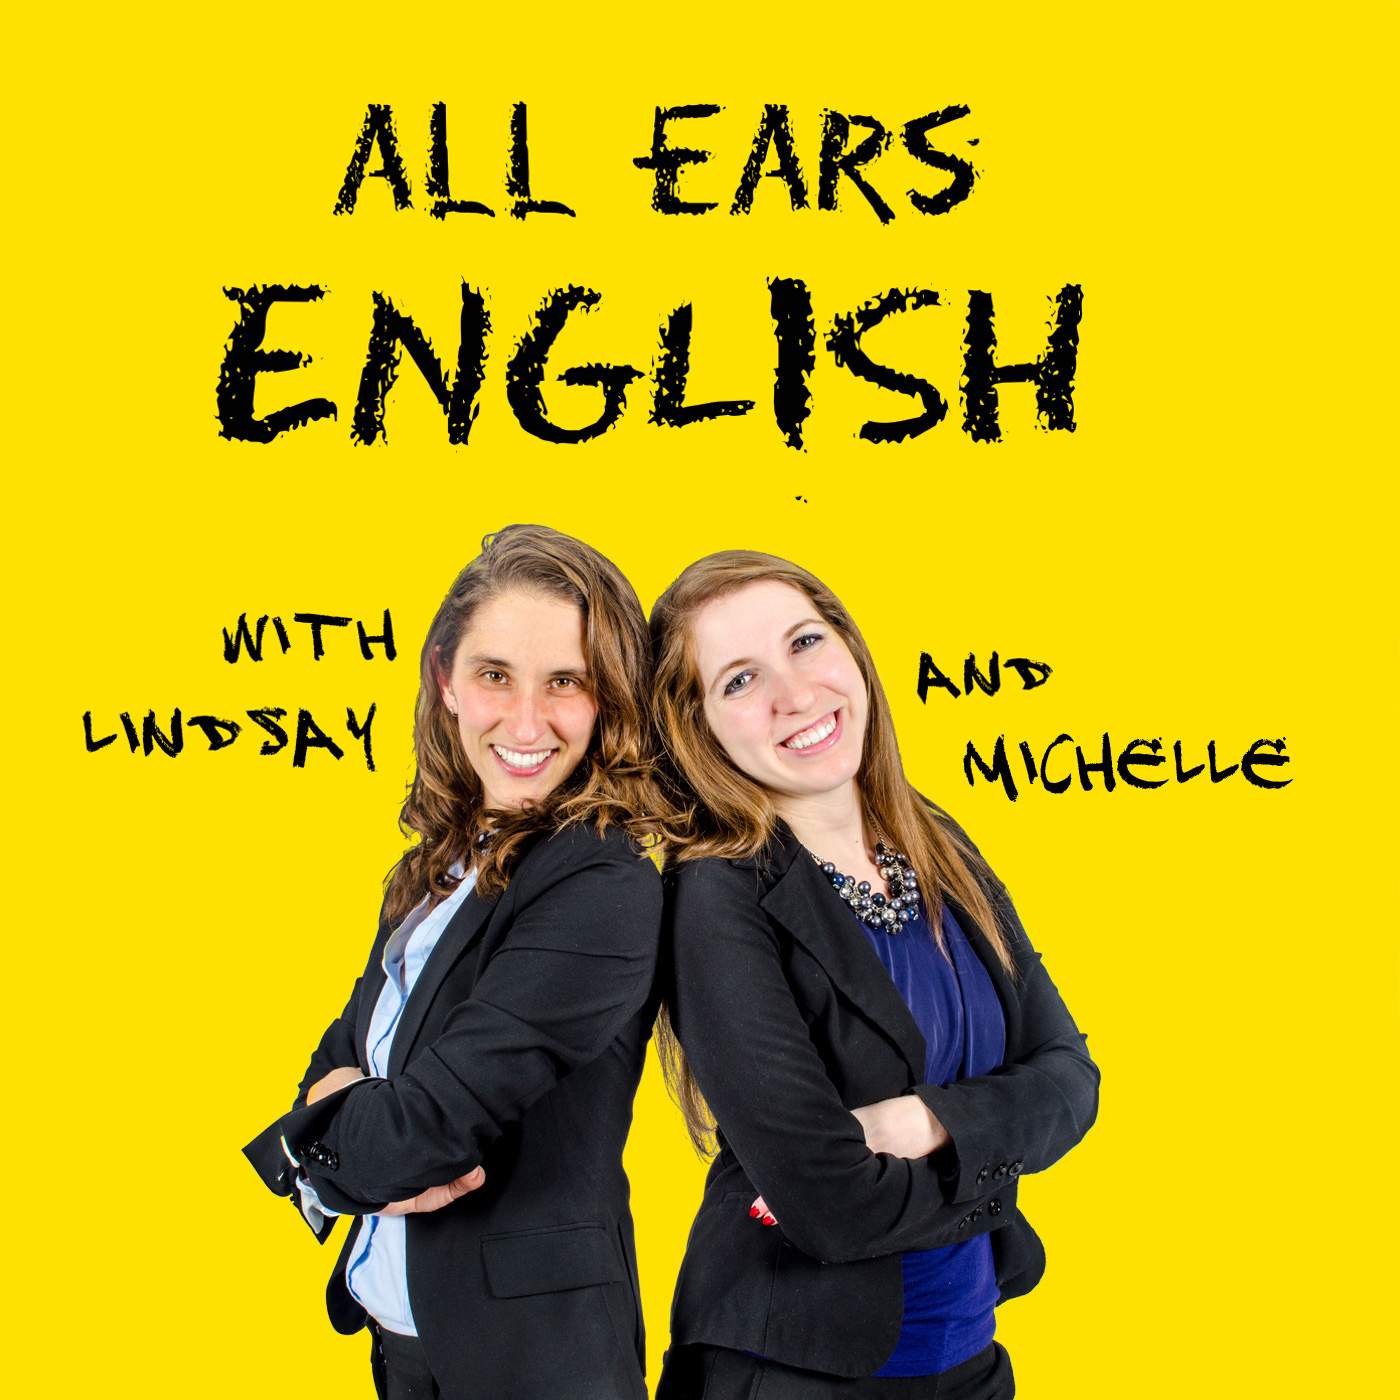 AEE 1366: Aussie English Slang Words with Pete Smissen